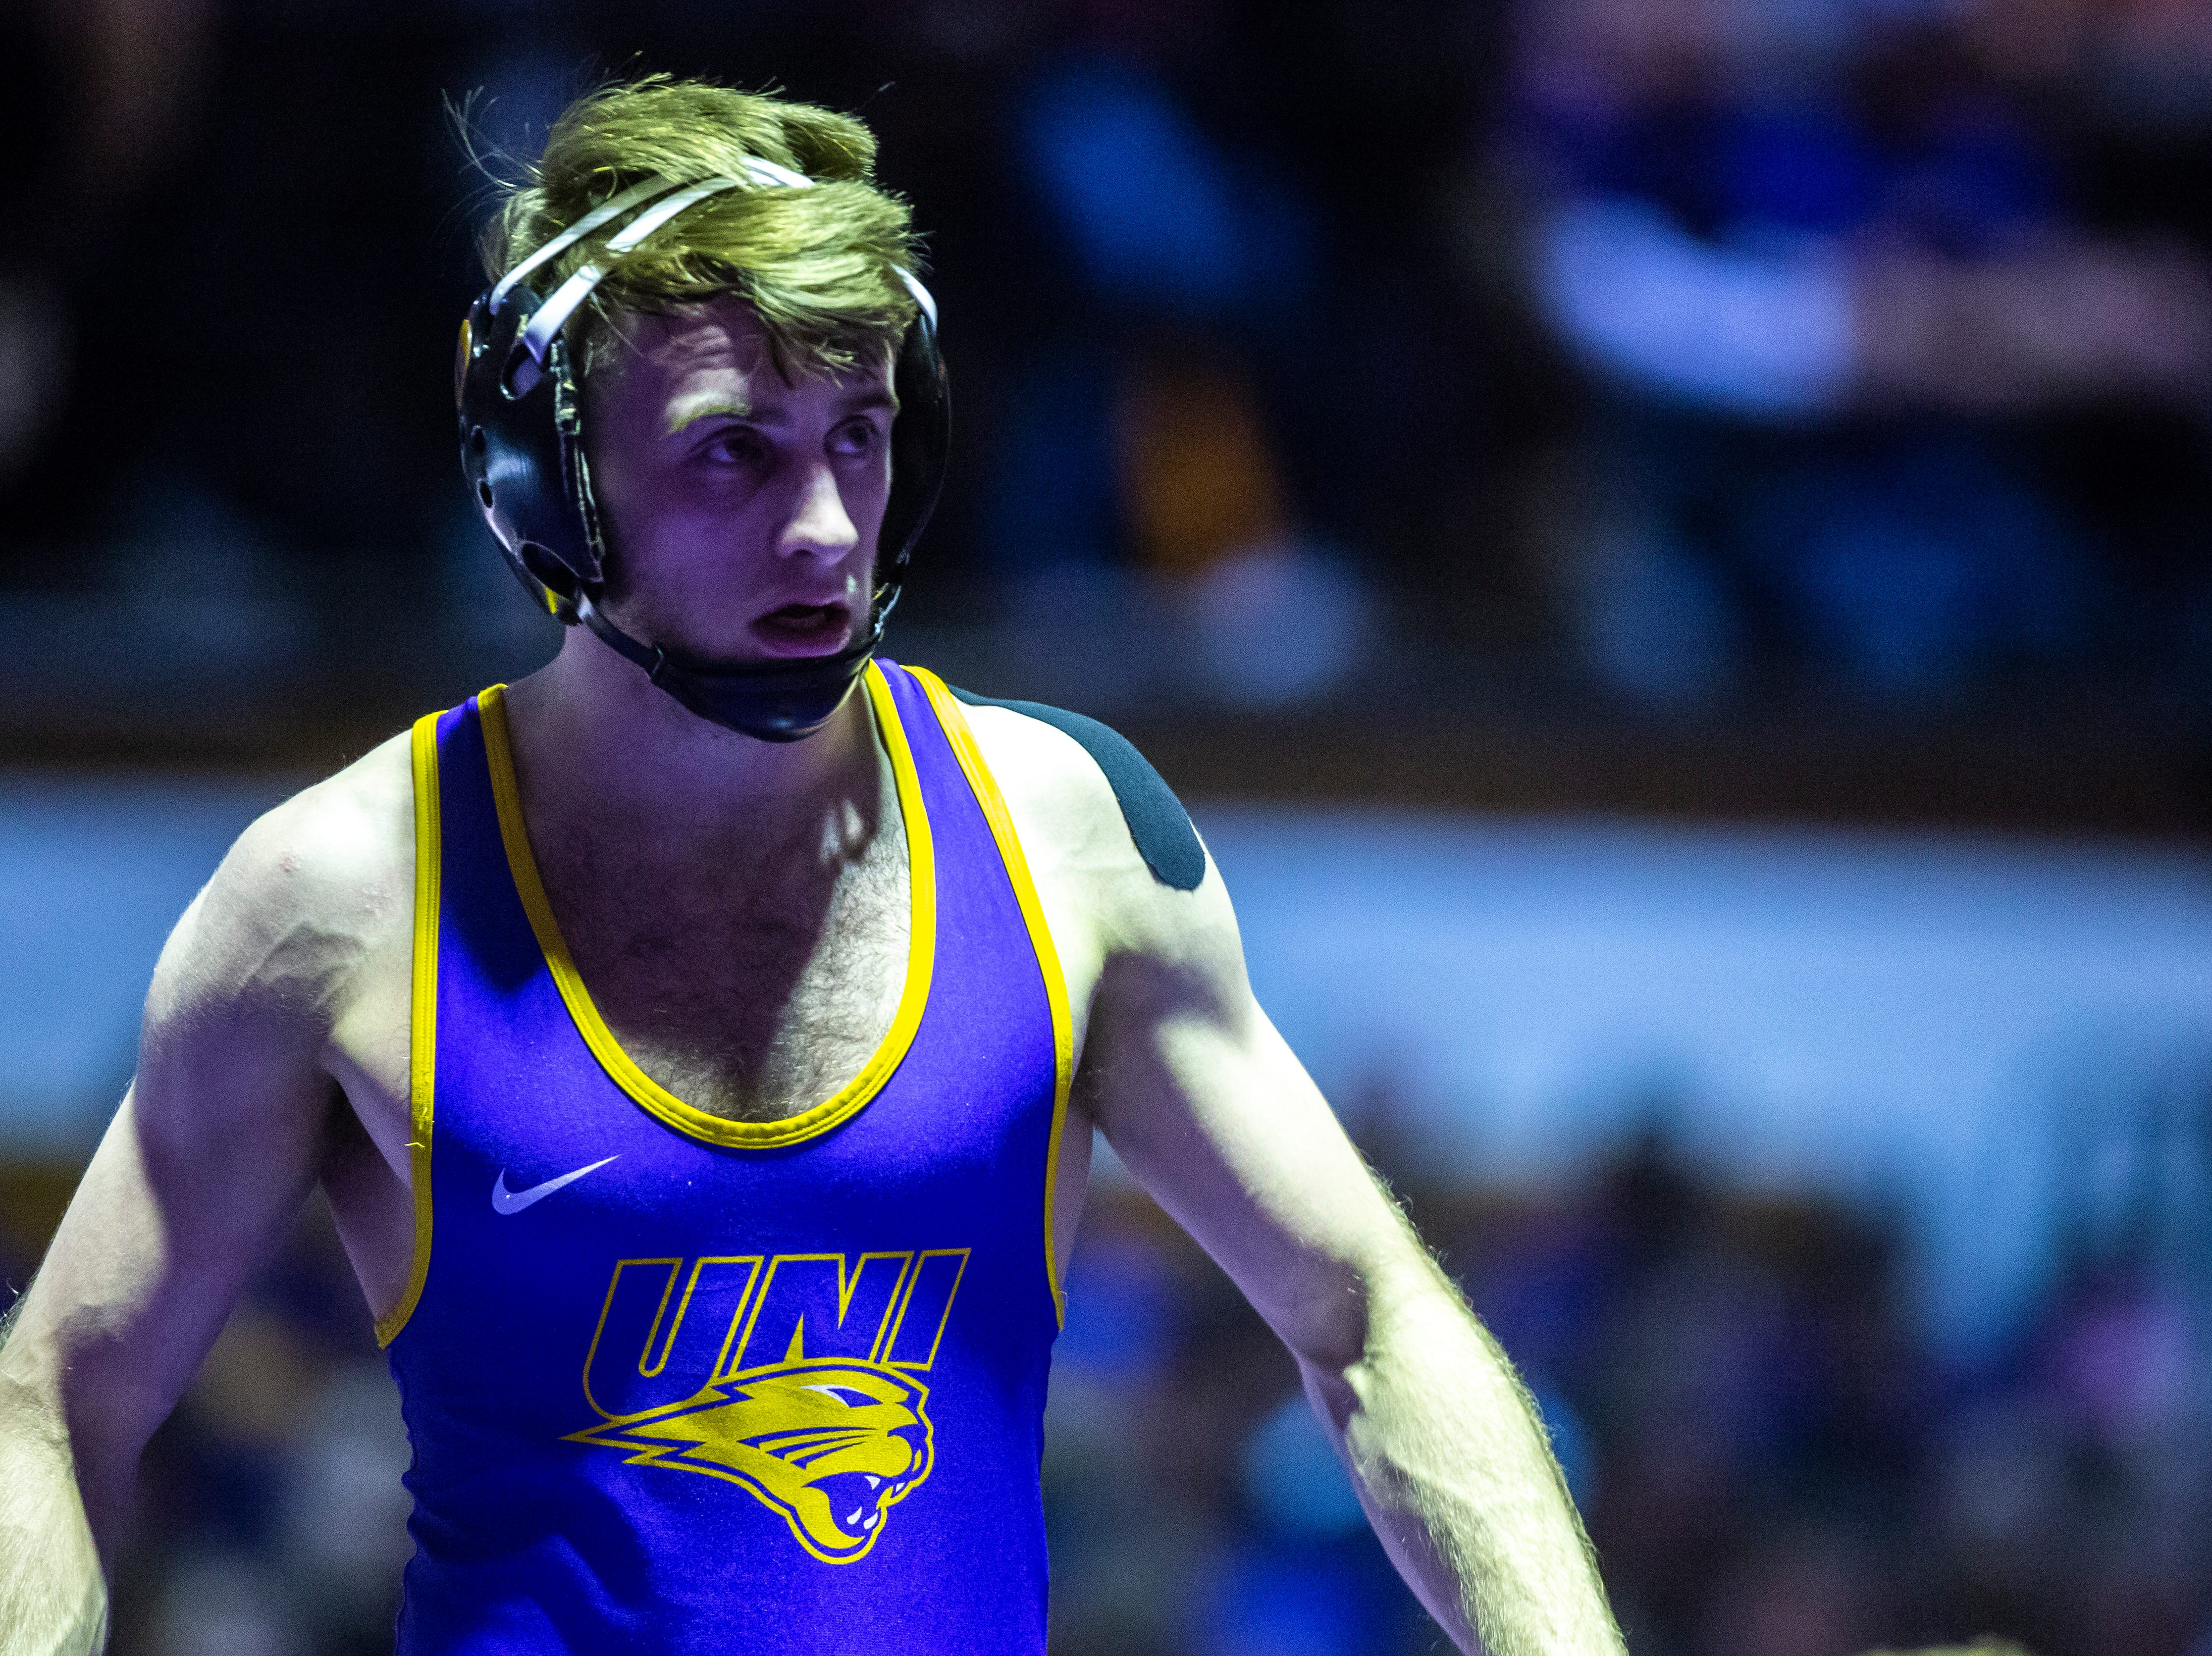 Northern Iowa's Jay Schwarm is seen during a match at 125 during a NCAA Big 12 wrestling dual on Thursday, Feb. 21, 2019 at the West Gymnasium in Cedar Falls, Iowa.